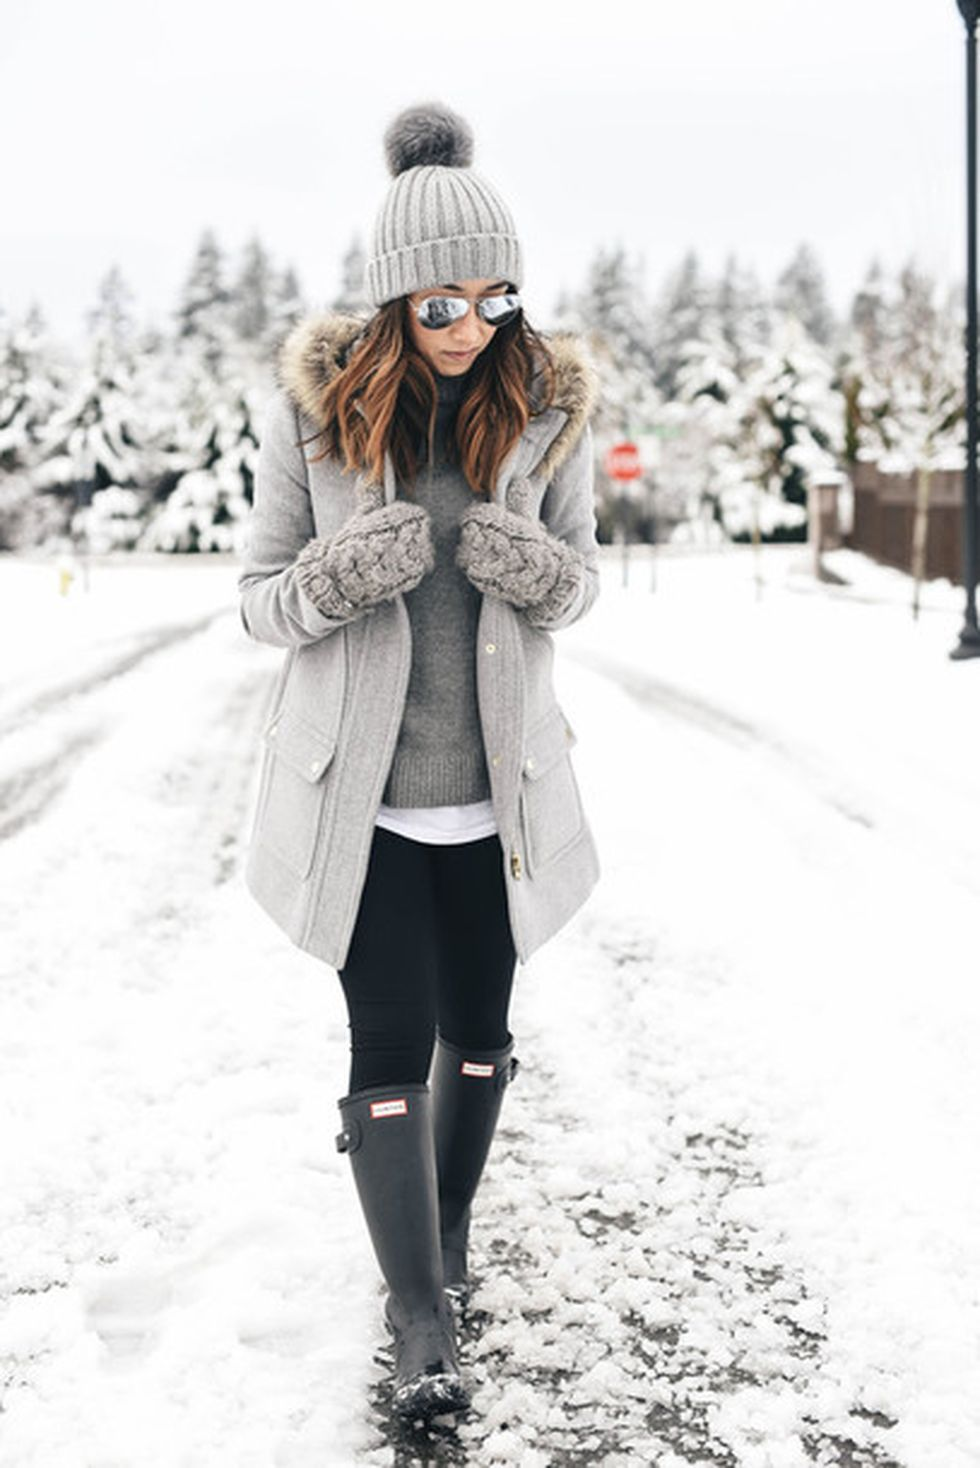 Fashionable Women Hats For Winter And Snow Outfits 40 -5057